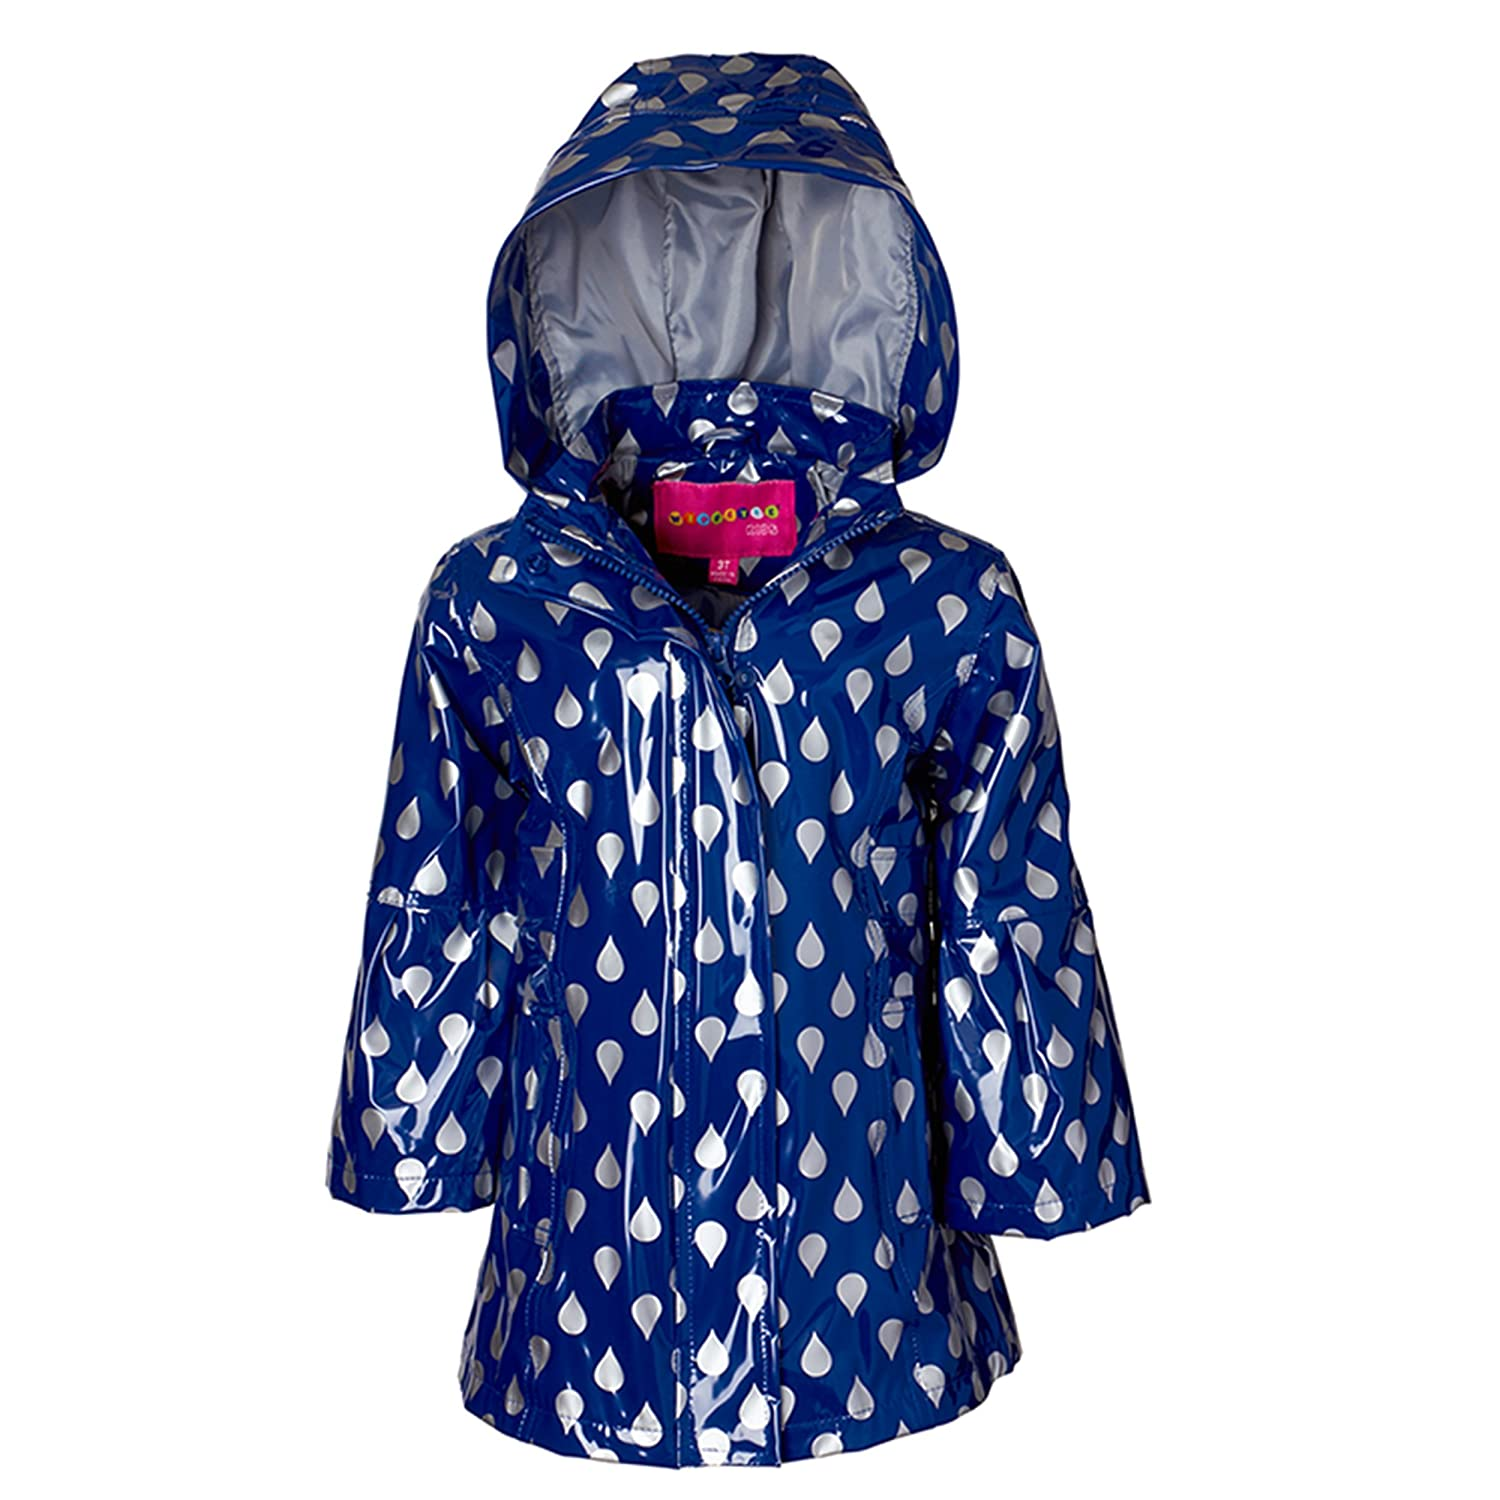 Wippette Girls & Toddlers Raincoat WG605190-NVY-12M